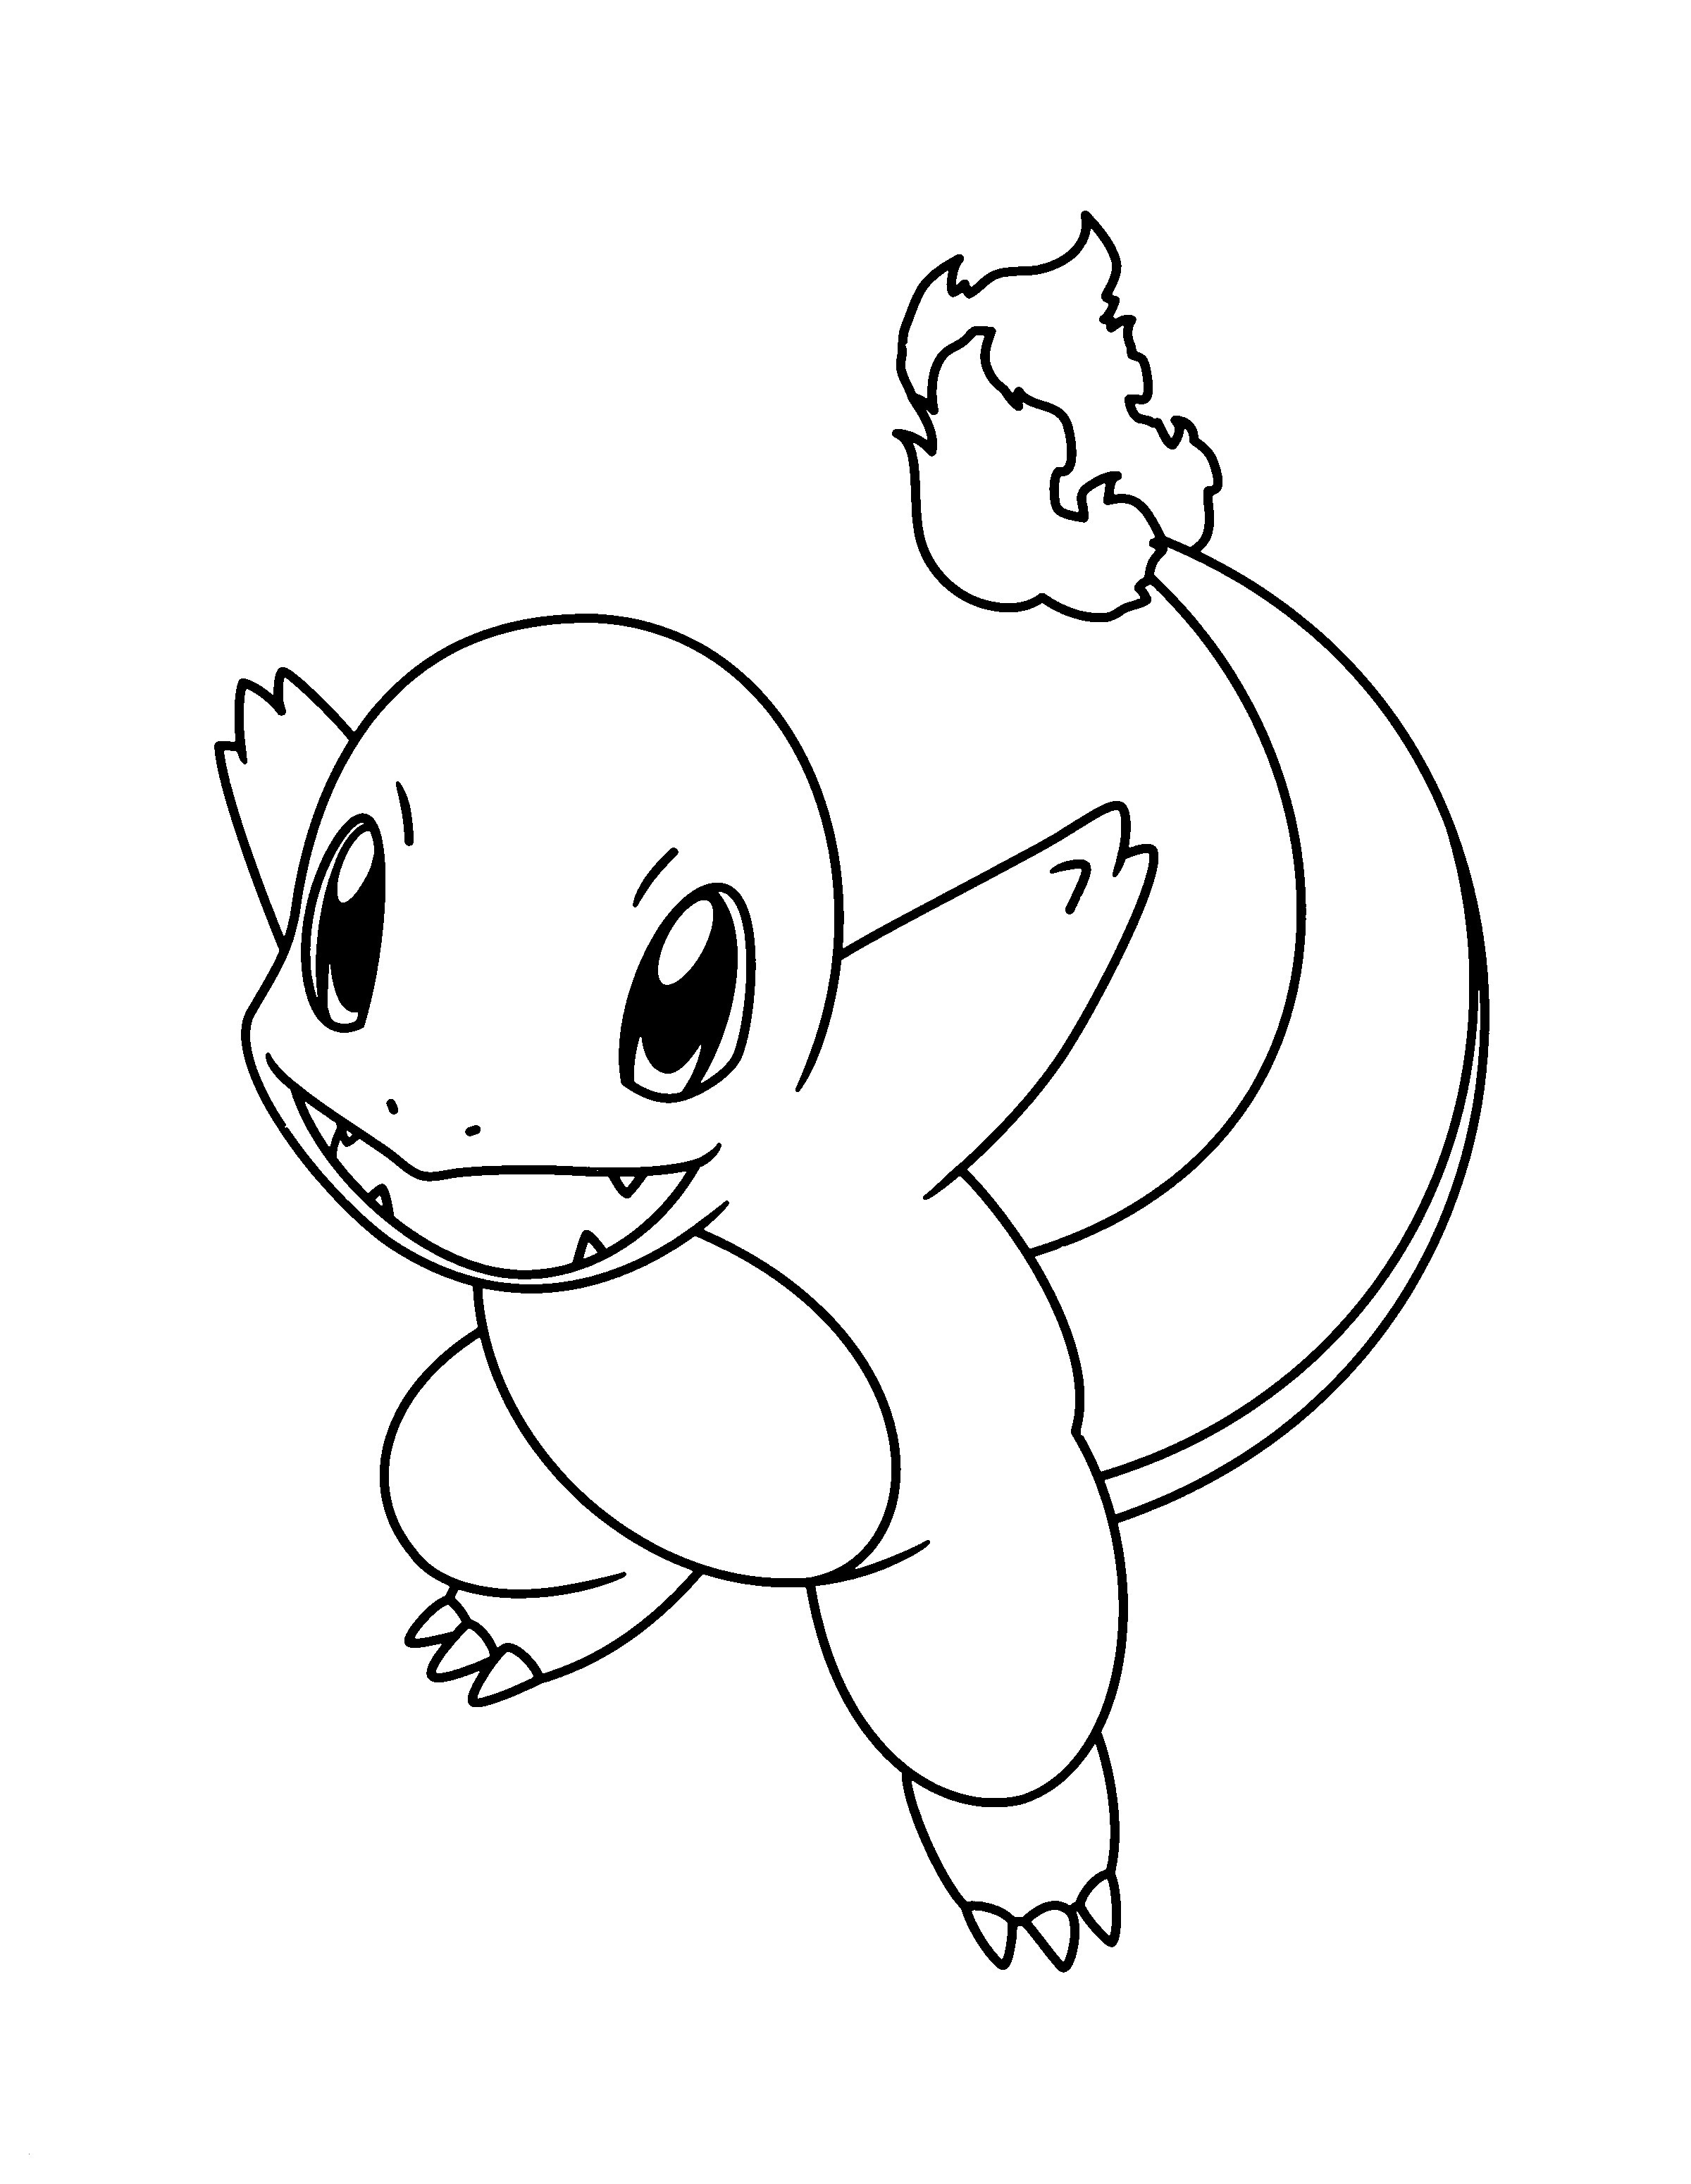 Kostenlose Ausmalbilder Pokemon Einzigartig Pokemon Advanced Coloring Pages Elegant Ausmalbilder Pokemon Pikachu Fotografieren